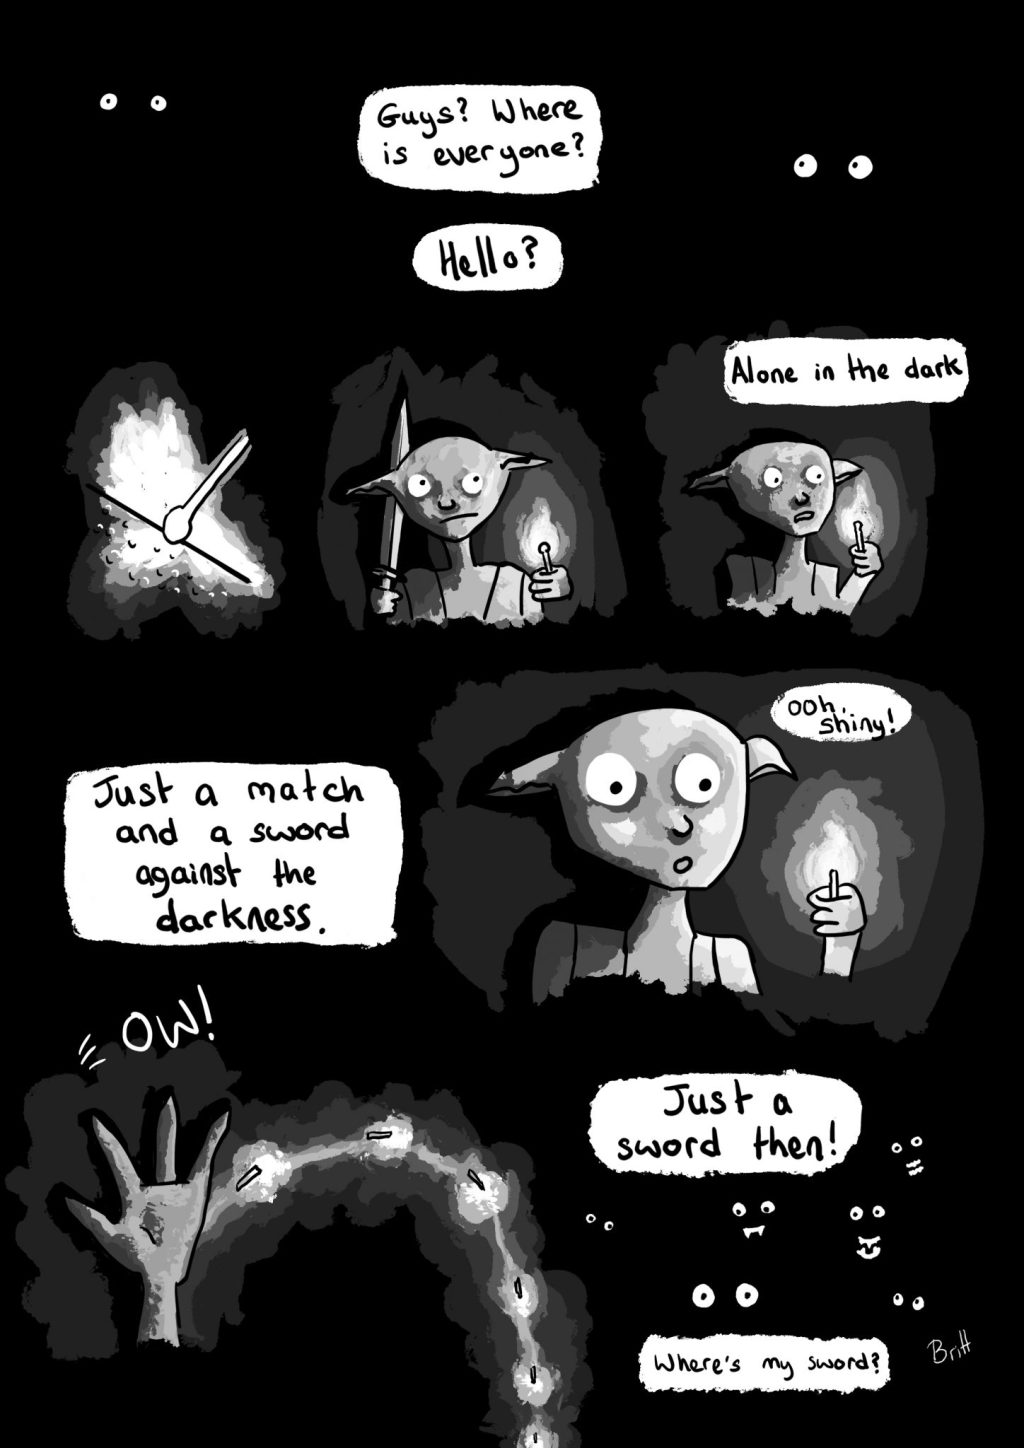 Darkness comic page, a comic about being alone in the dark. Alone? Perhaps not.